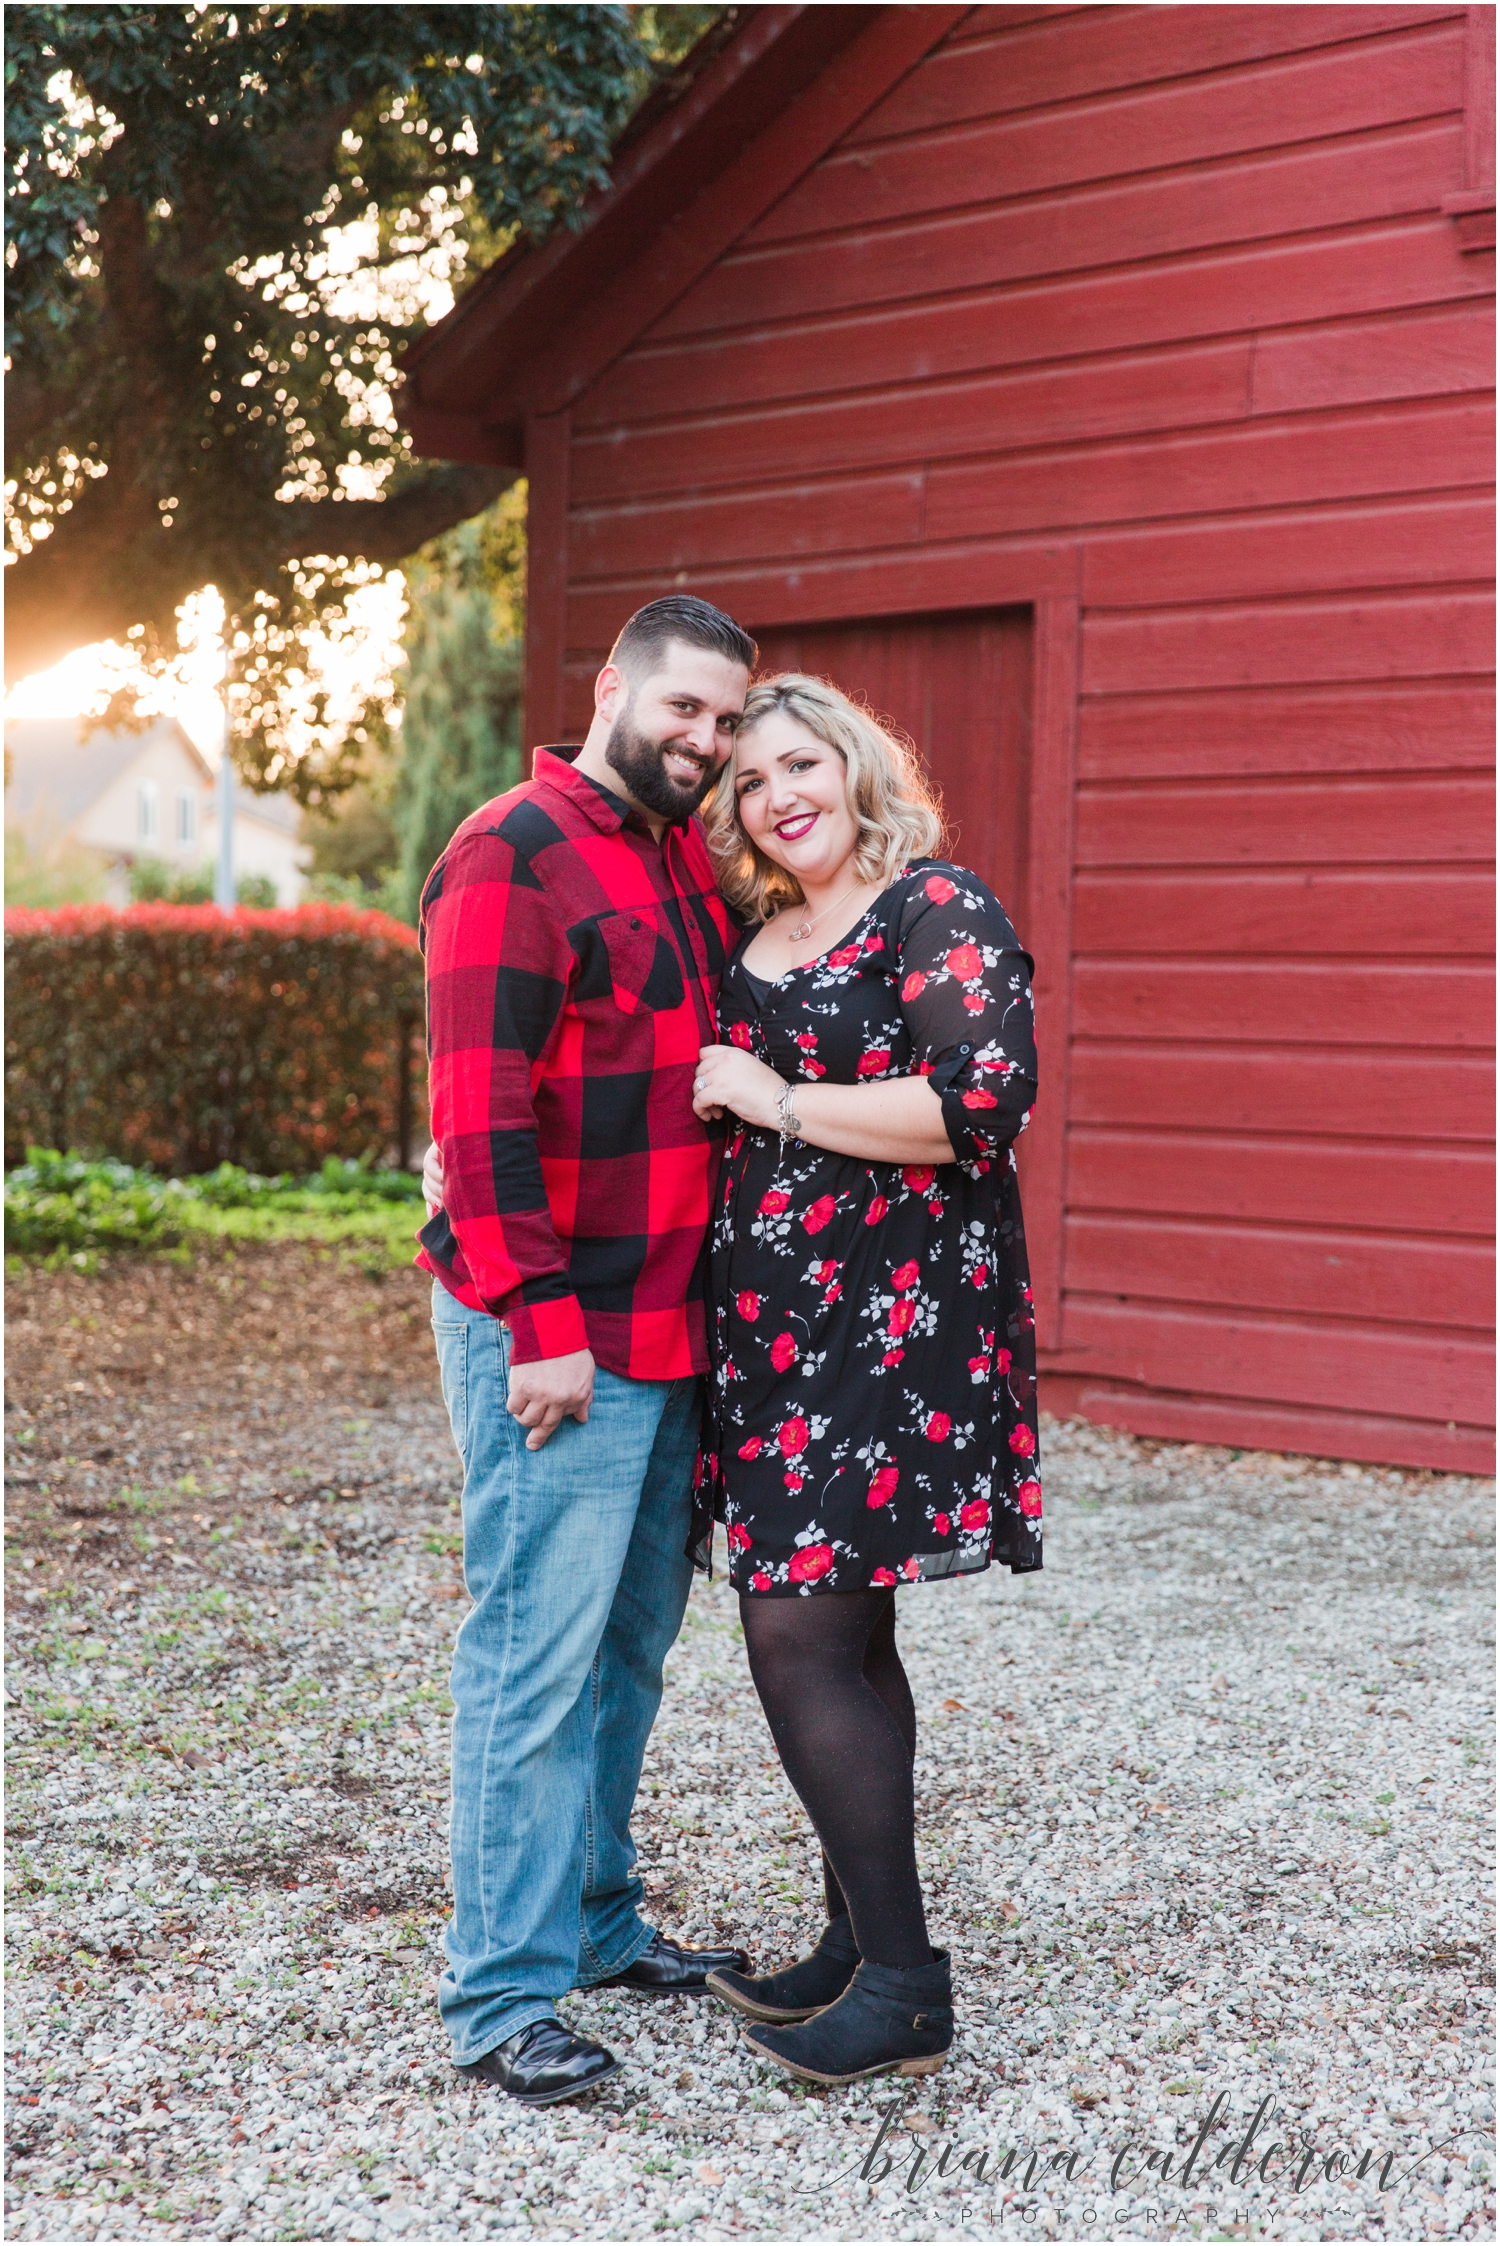 Family pictures at Shinn Historical Park in Fremont by Briana Calderon Photography_1214.jpg